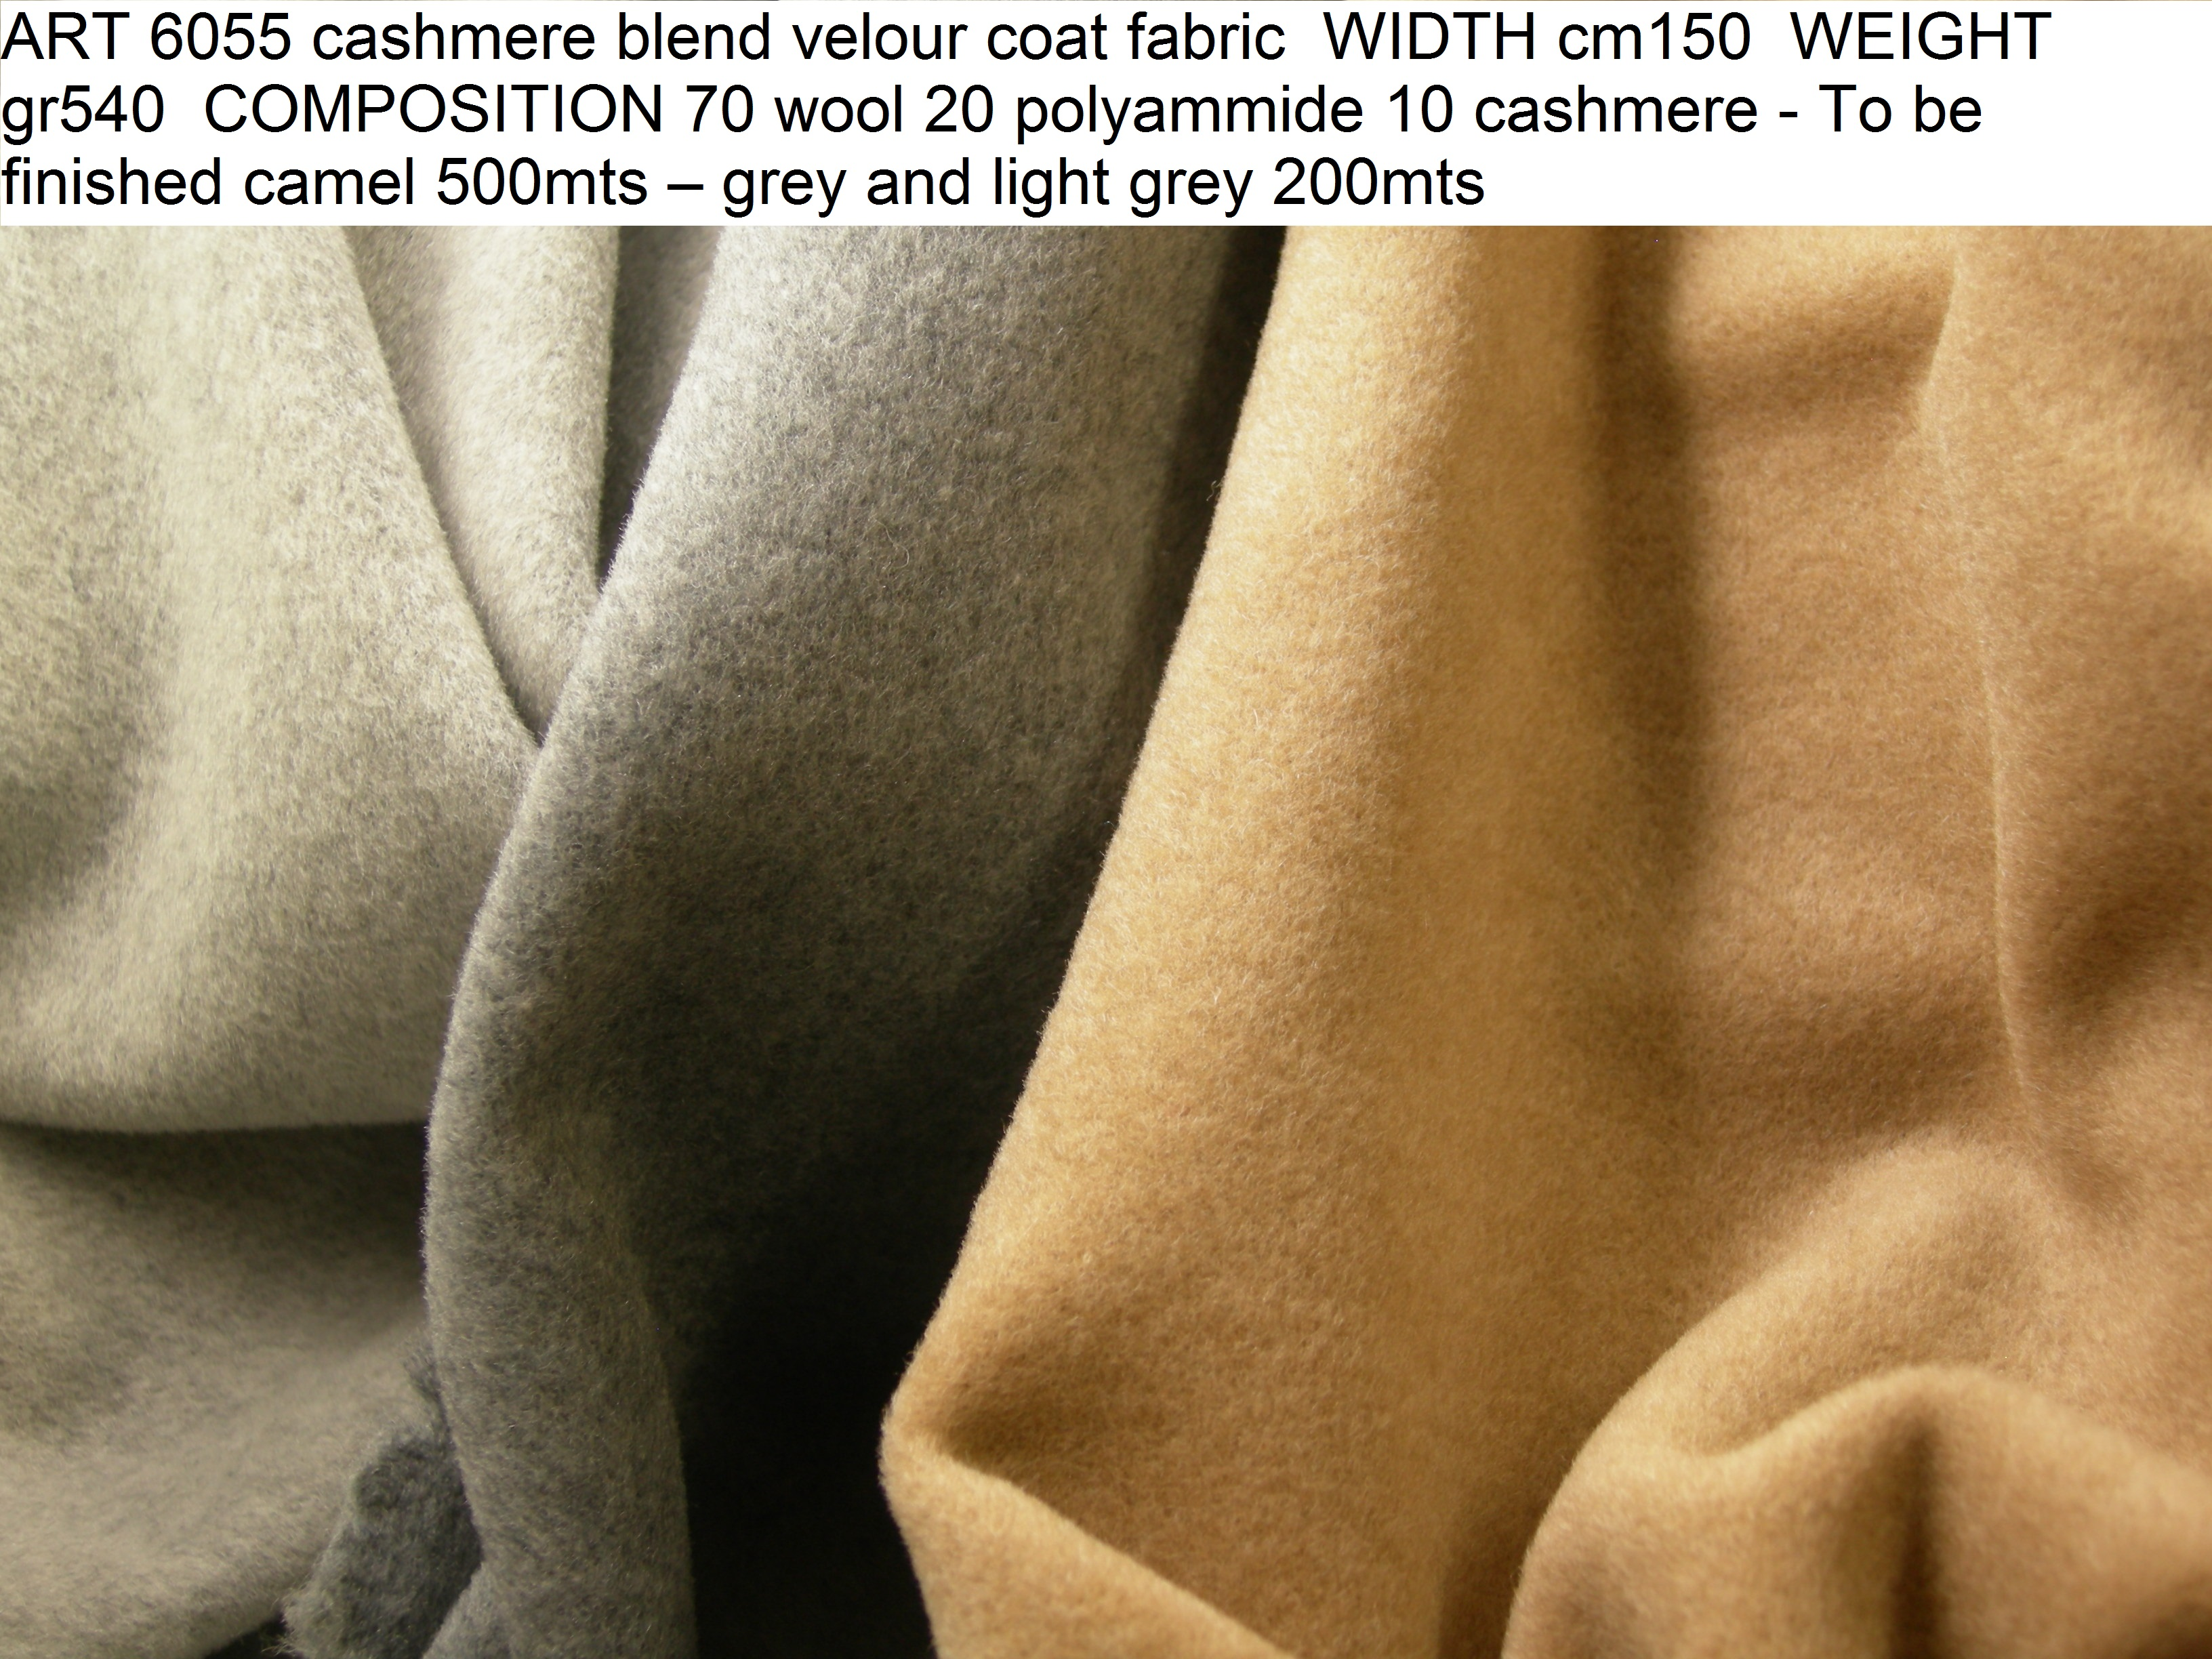 ART 6055 cashmere blend velour coat fabric WIDTH cm150 WEIGHT gr540 COMPOSITION 70 wool 20 polyammide 10 cashmere - To be finished camel 500mts – grey and light grey 200mts